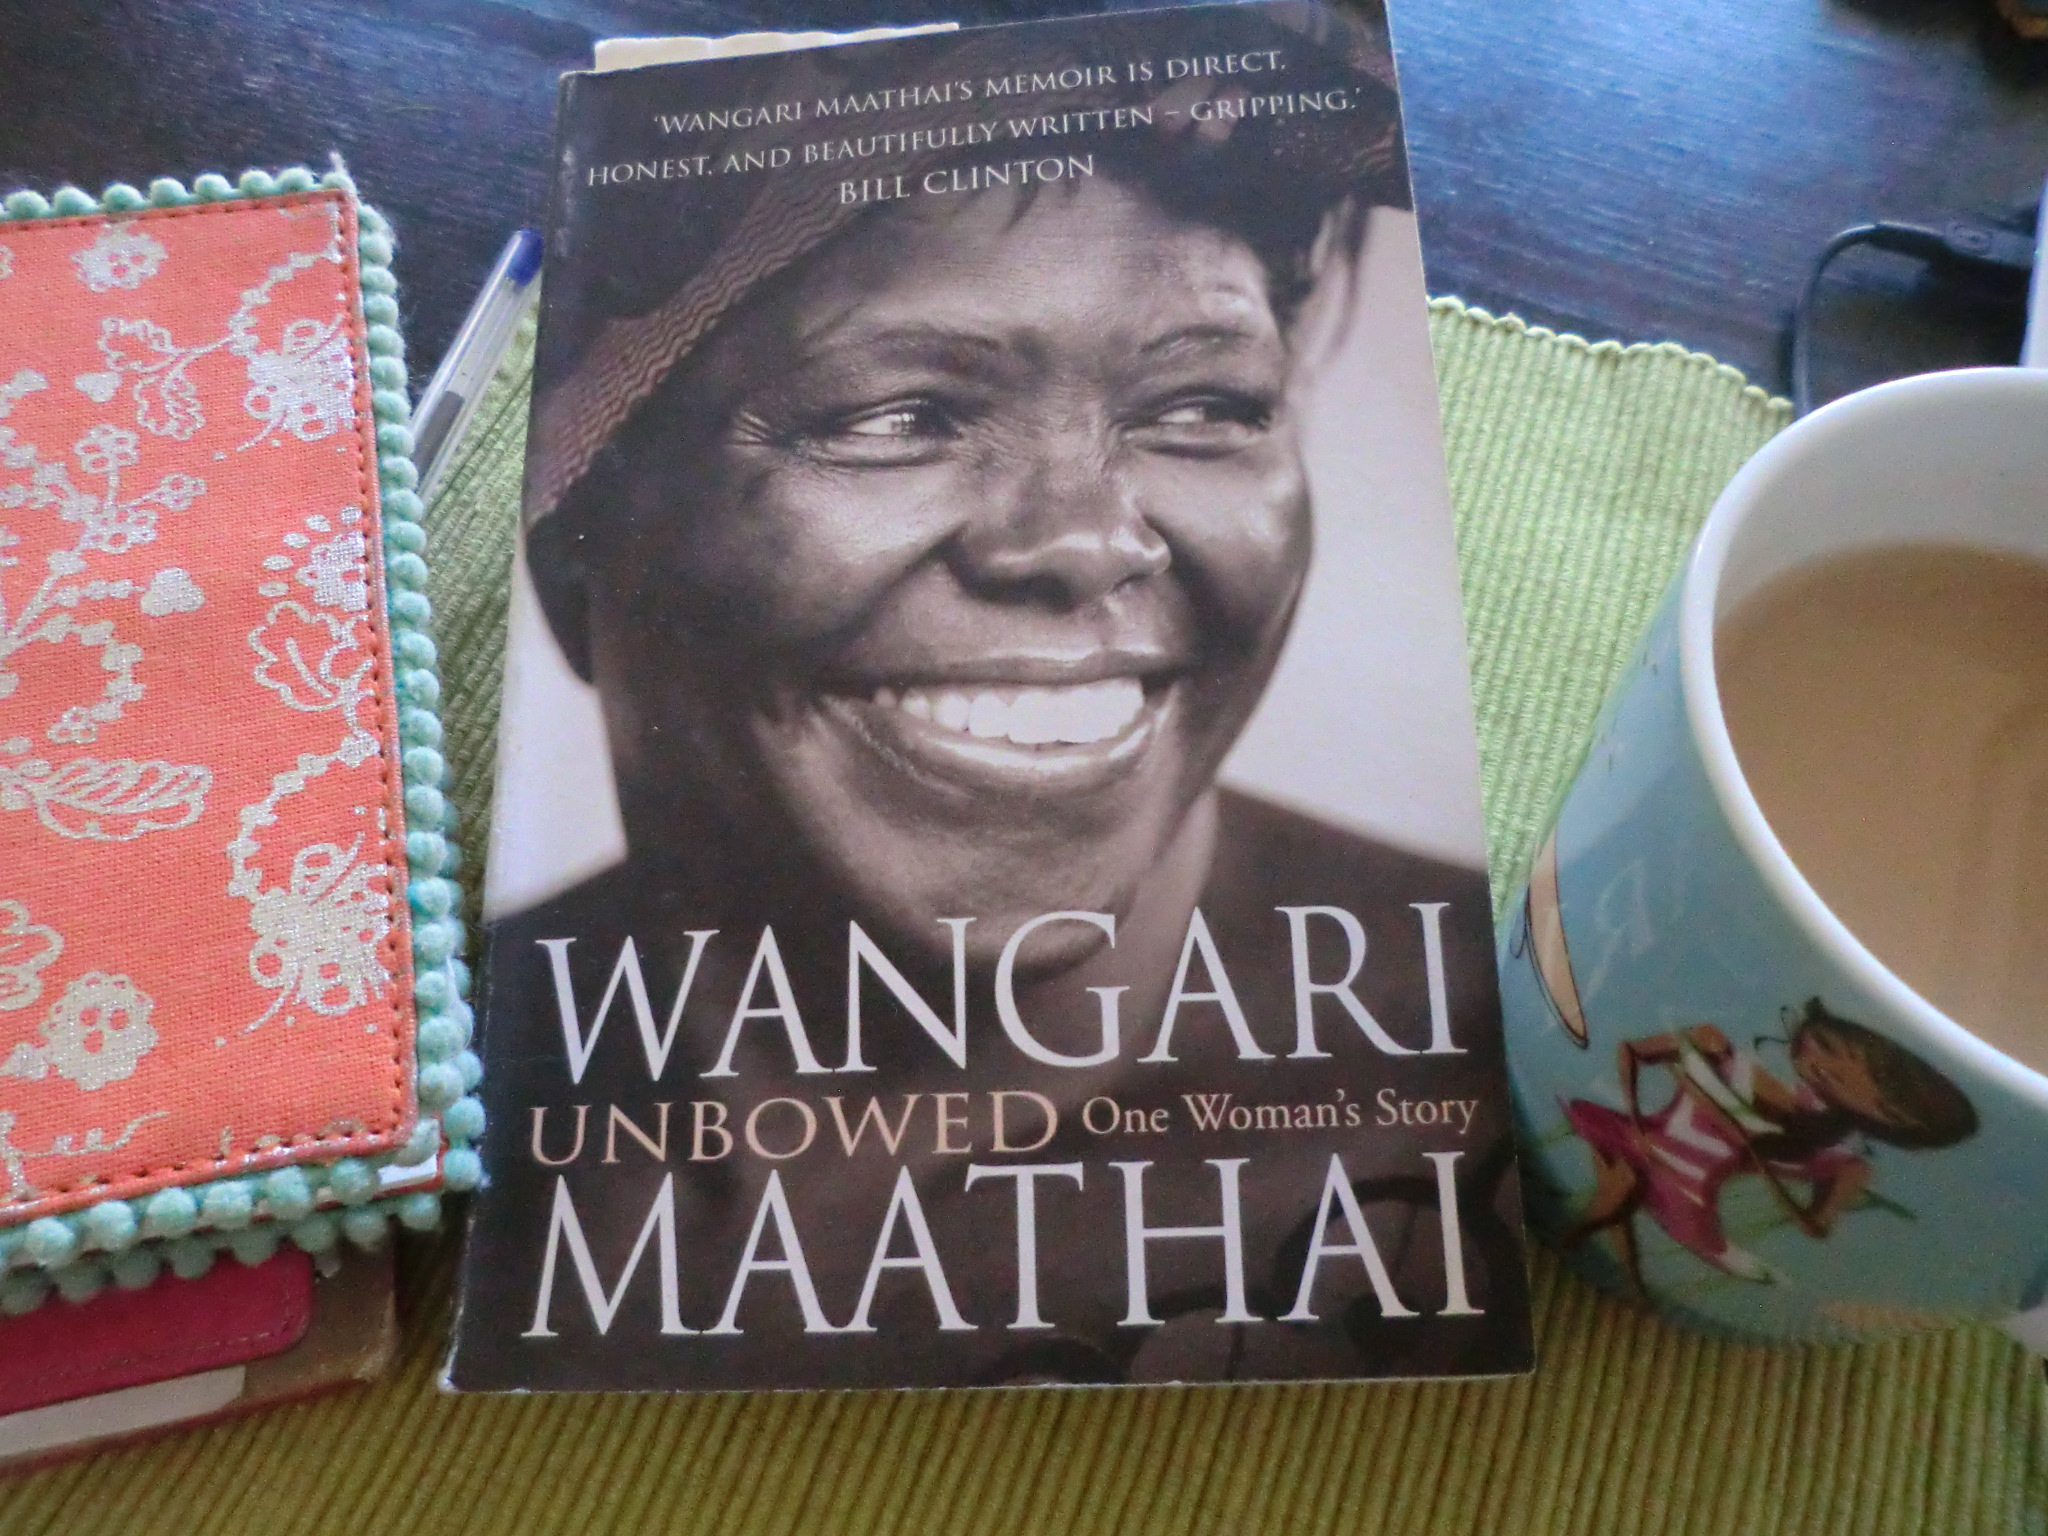 unbowed a memoir wangari maathai Wangari maathai's memoir is direct, honest, and beautifully written - a gripping account of modern africa's trials and triumphs, a universal story of courage, persistence, and success against great odds in a noble cause.